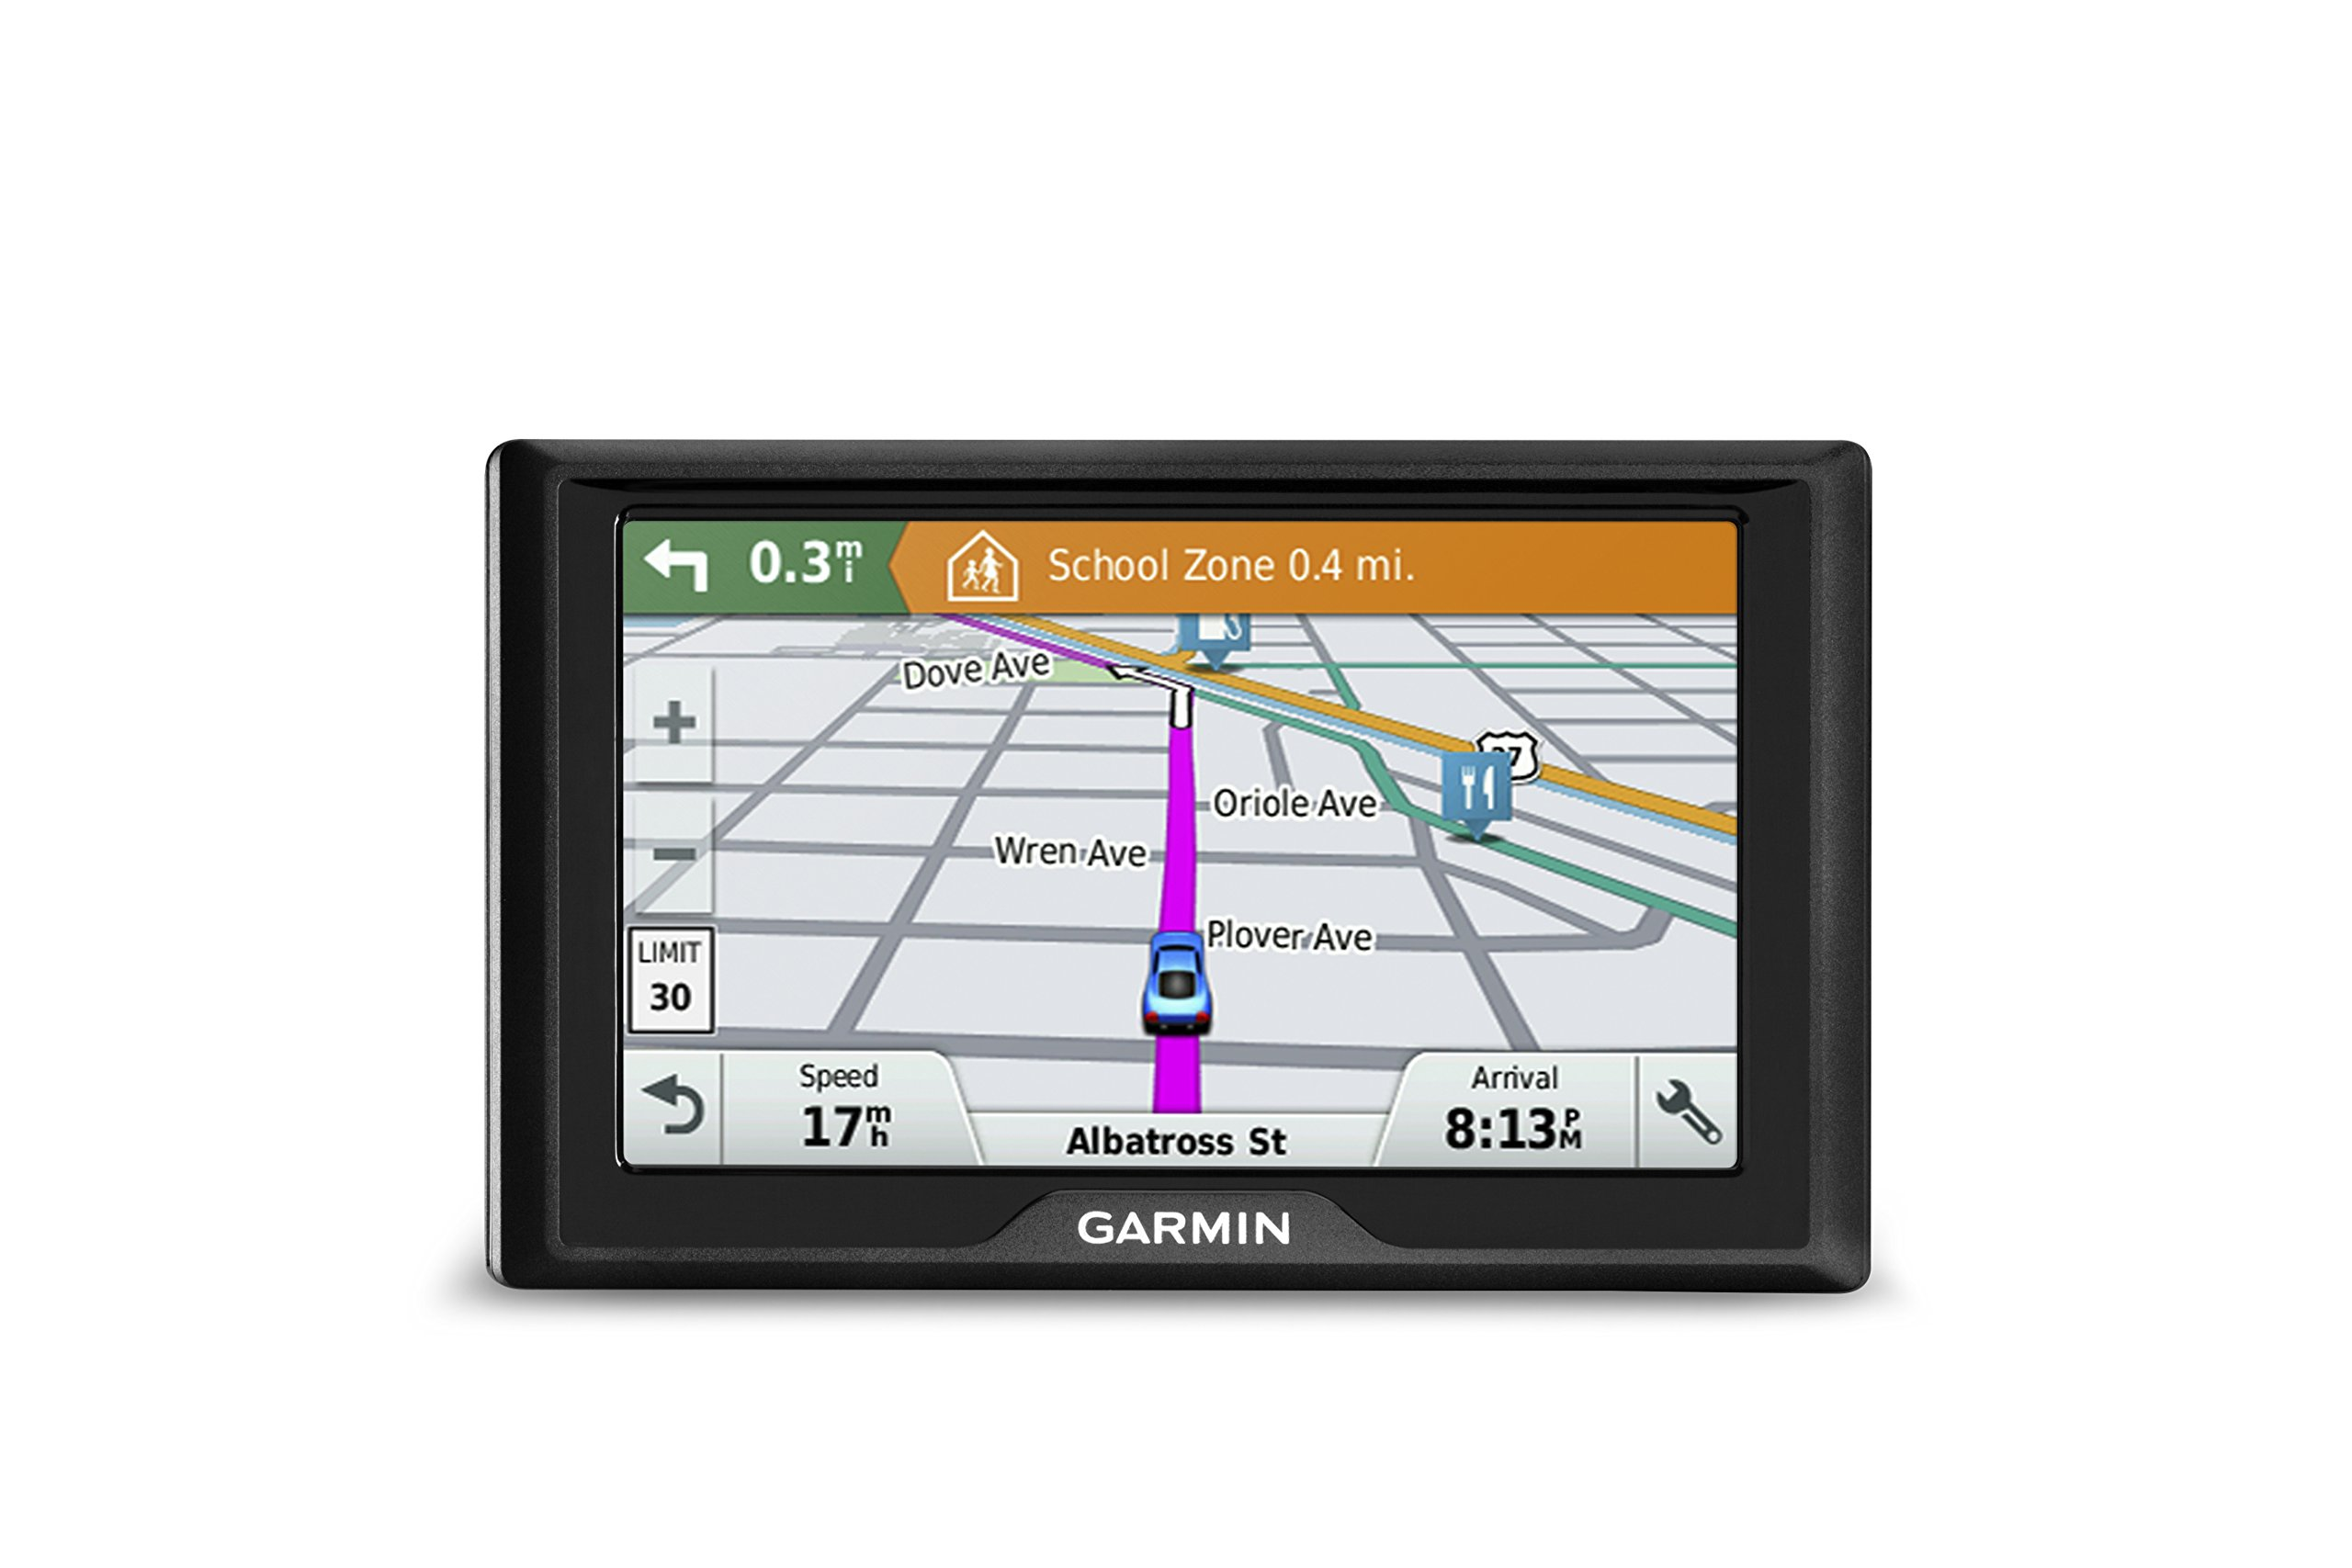 garmin drive 50 usa lm gps navigator system with lifetime maps best eld devices reviews. Black Bedroom Furniture Sets. Home Design Ideas